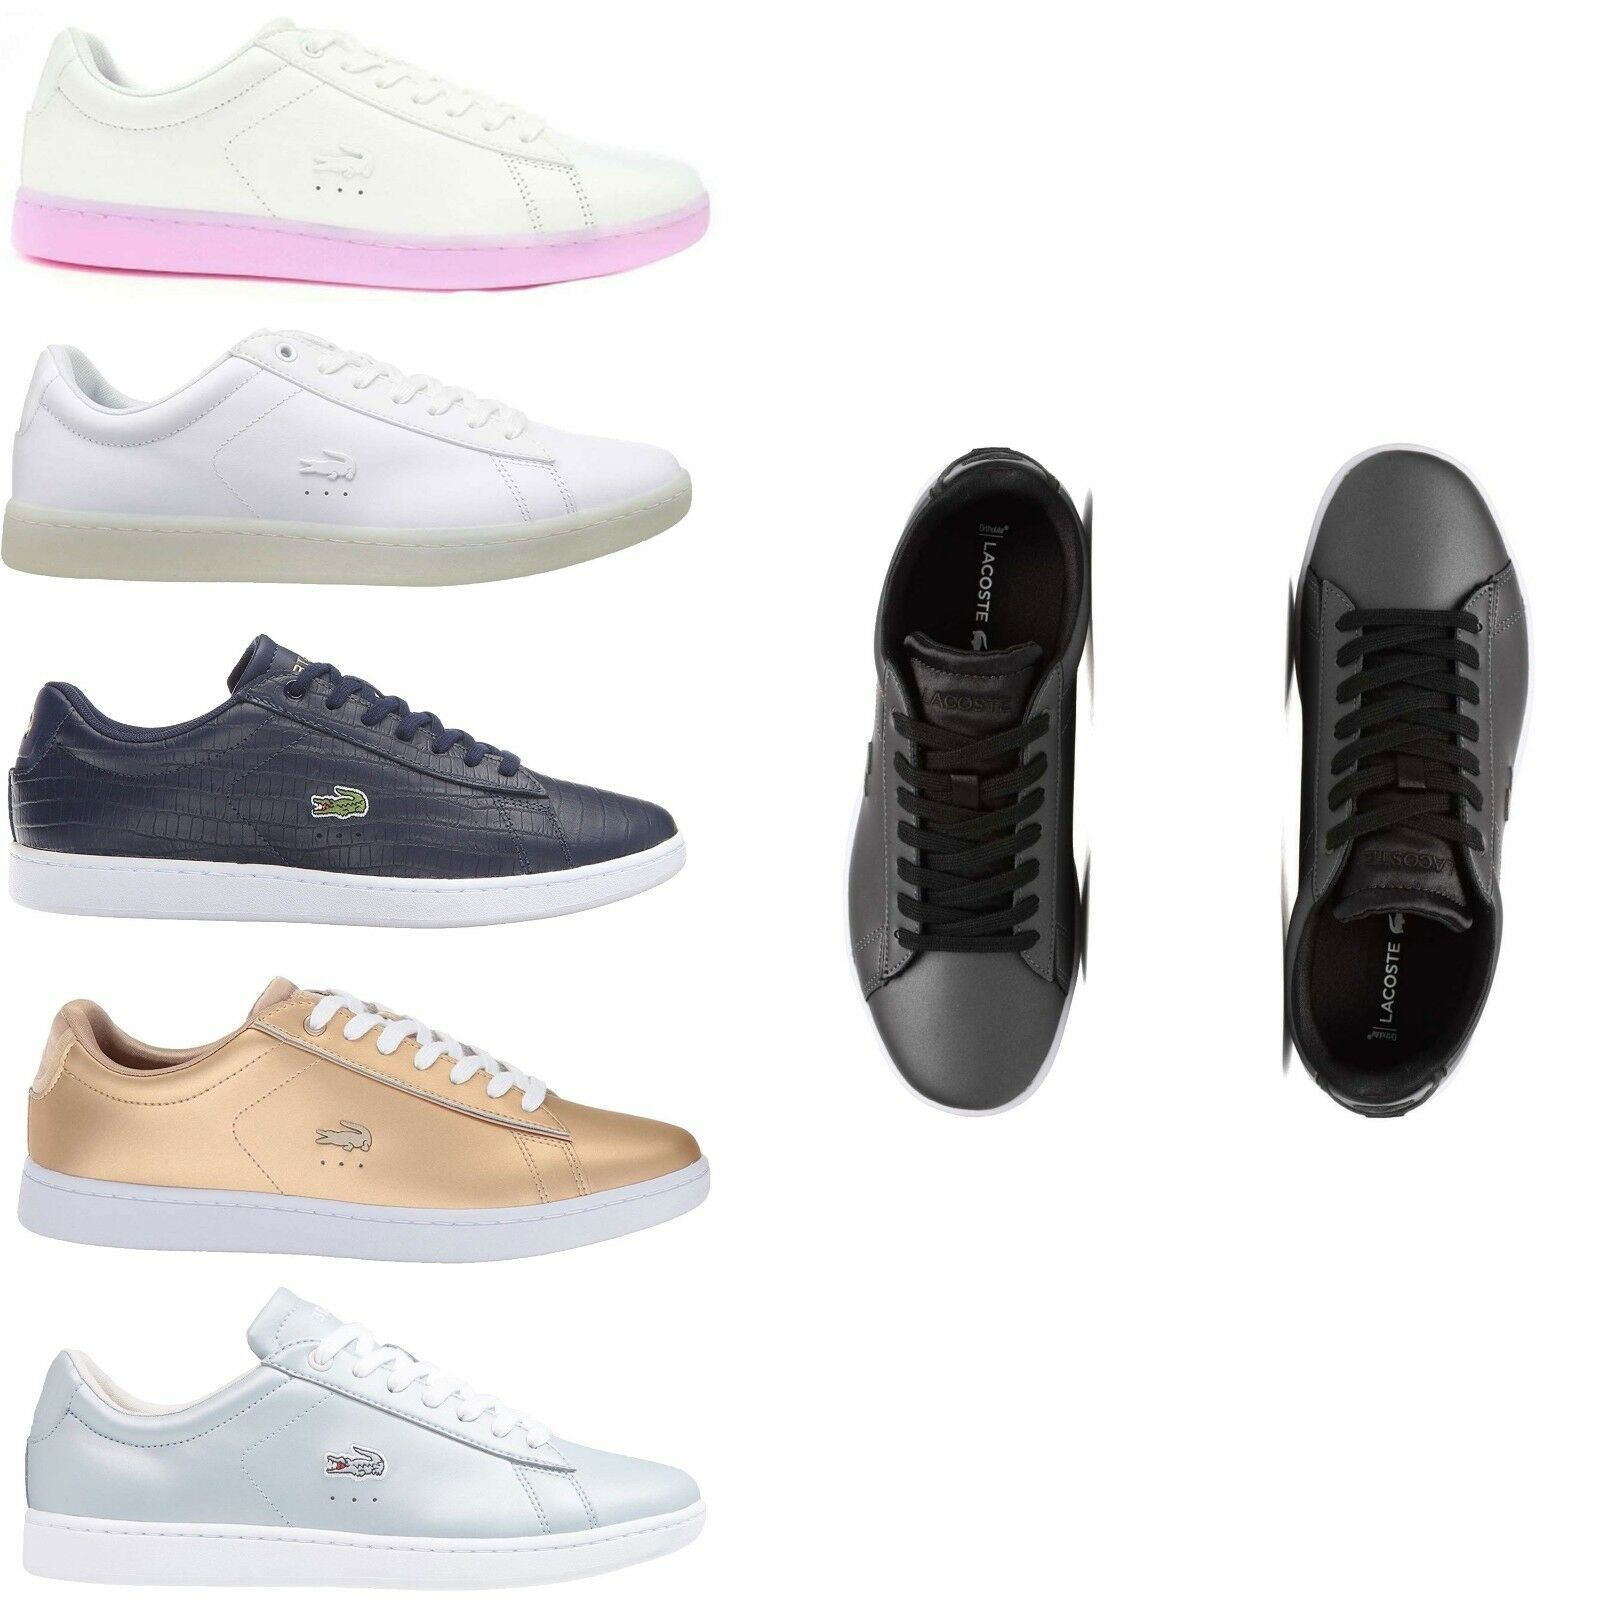 Lacoste Women Carnaby Evo Series Spw Fashion Sneakers Lightweight Tennis shoes